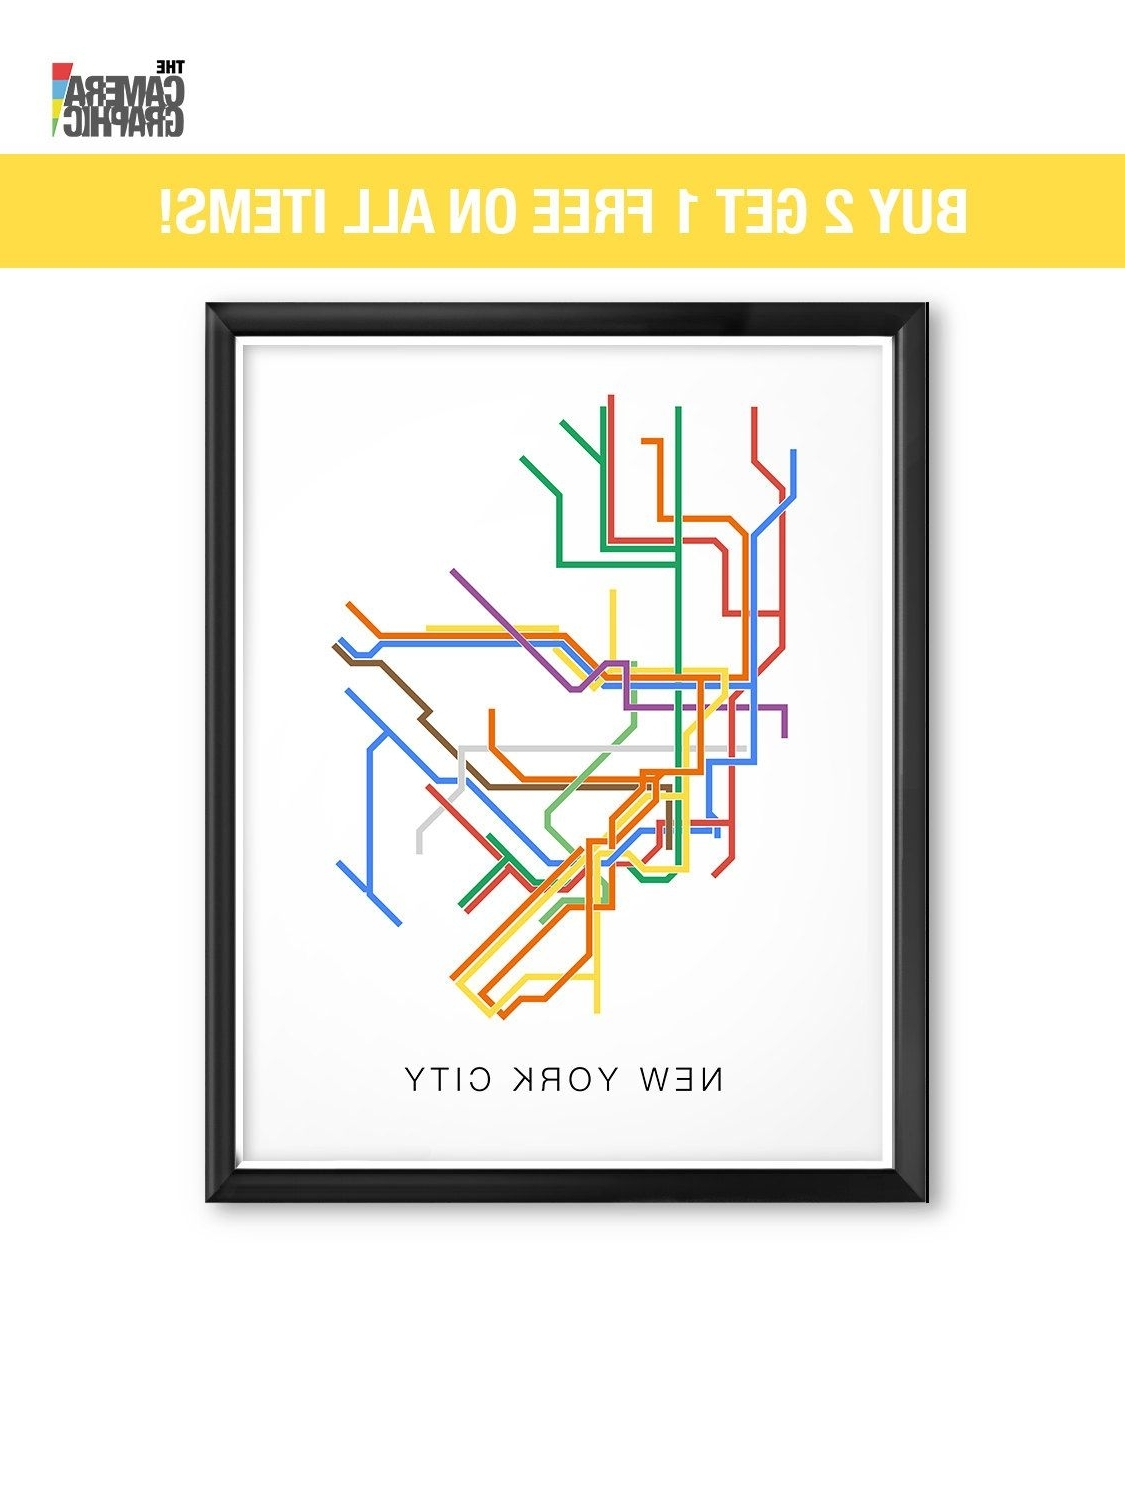 Famous Nyc Subway Map Wall Art With New York City Subway Map, City Transit Map Print, Nyc Map, Nyc Print (View 3 of 15)